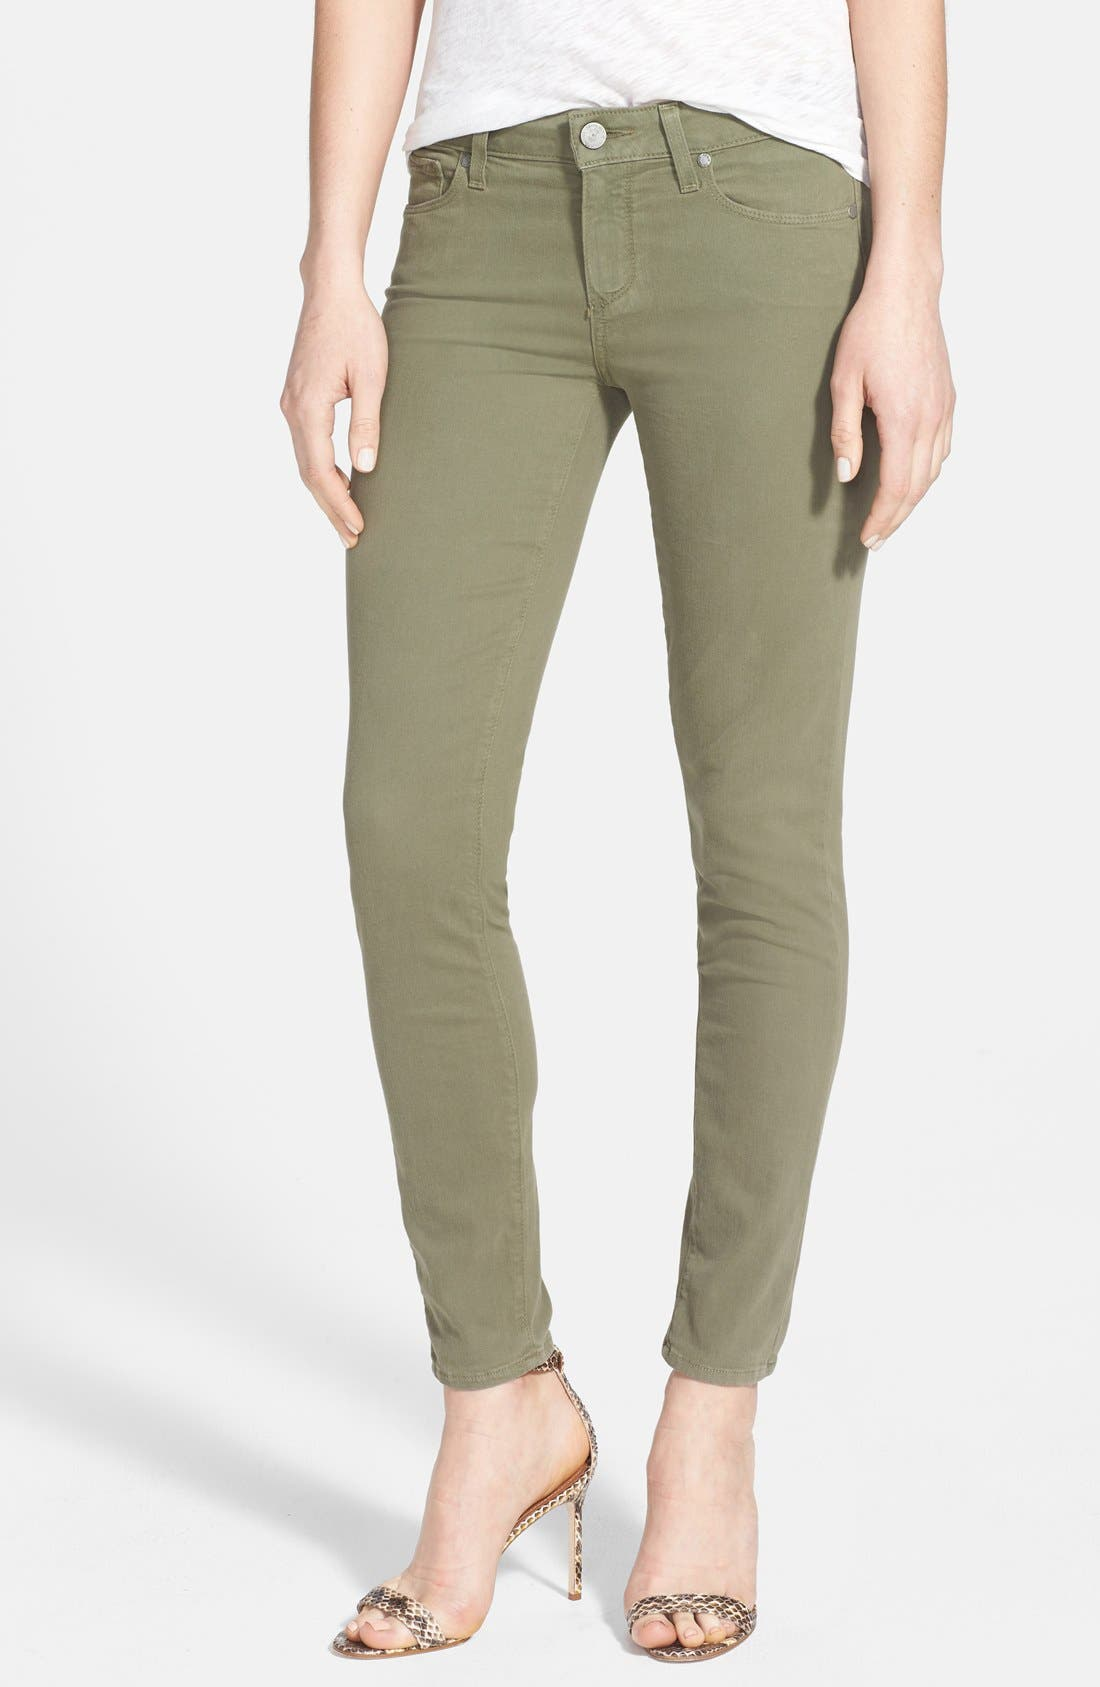 Alternate Image 1 Selected - Paige Denim 'Verdugo' Ankle Skinny Jeans (Fatigue Green)